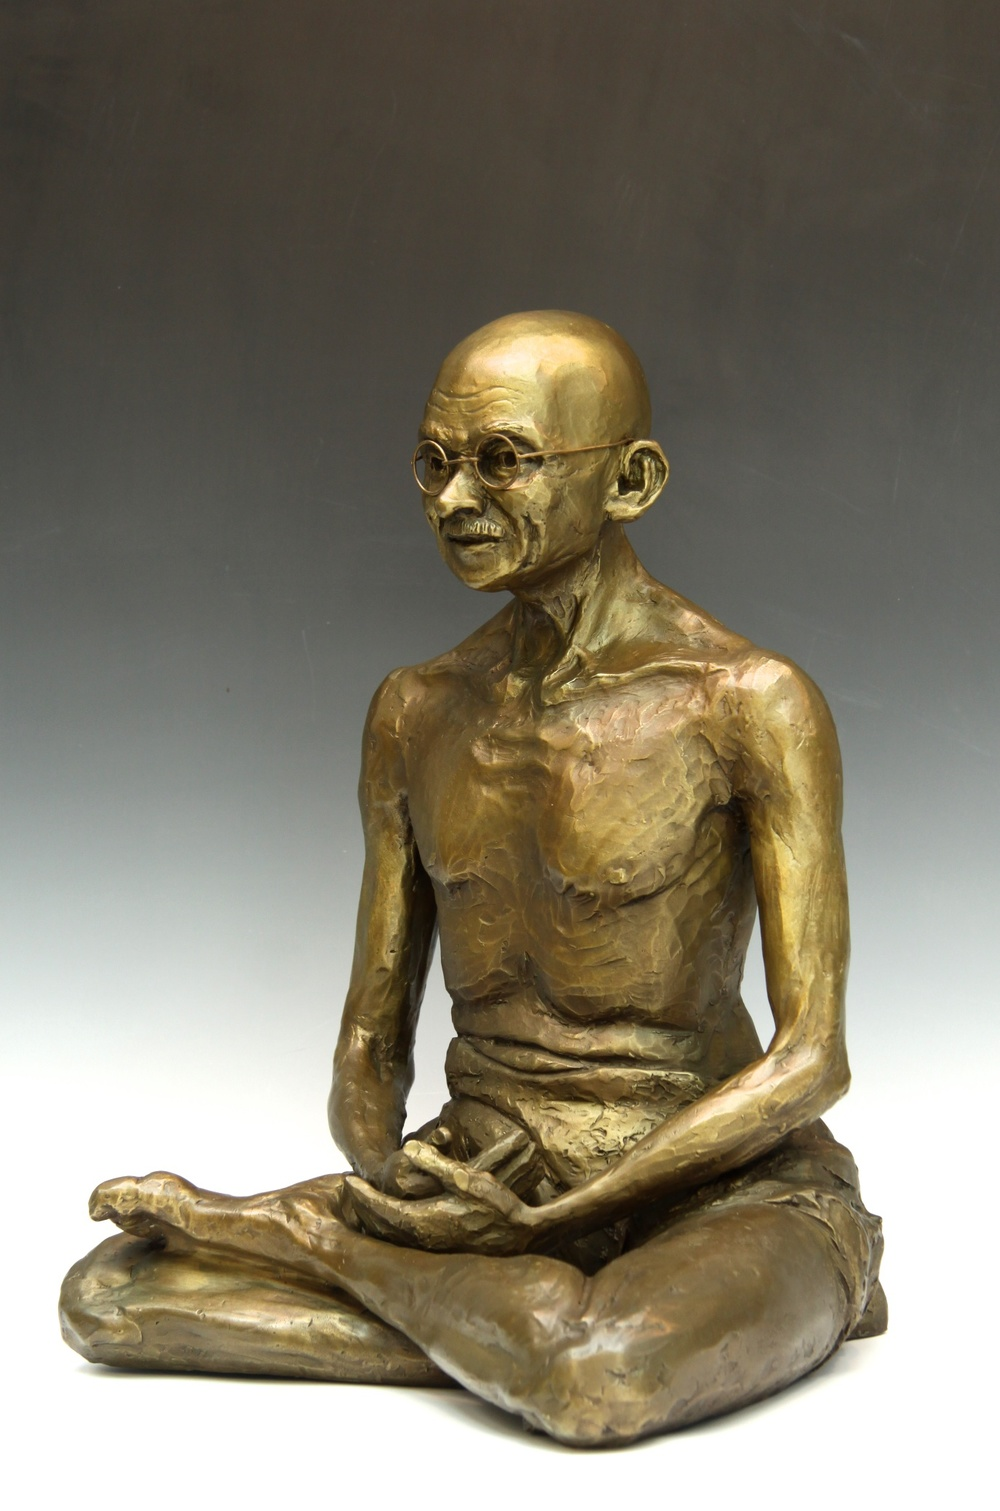 Gandhi, bronze sculpture portrait limited edition, 40cmH x 33cmW x 30cmD.  Available on optional marble base.